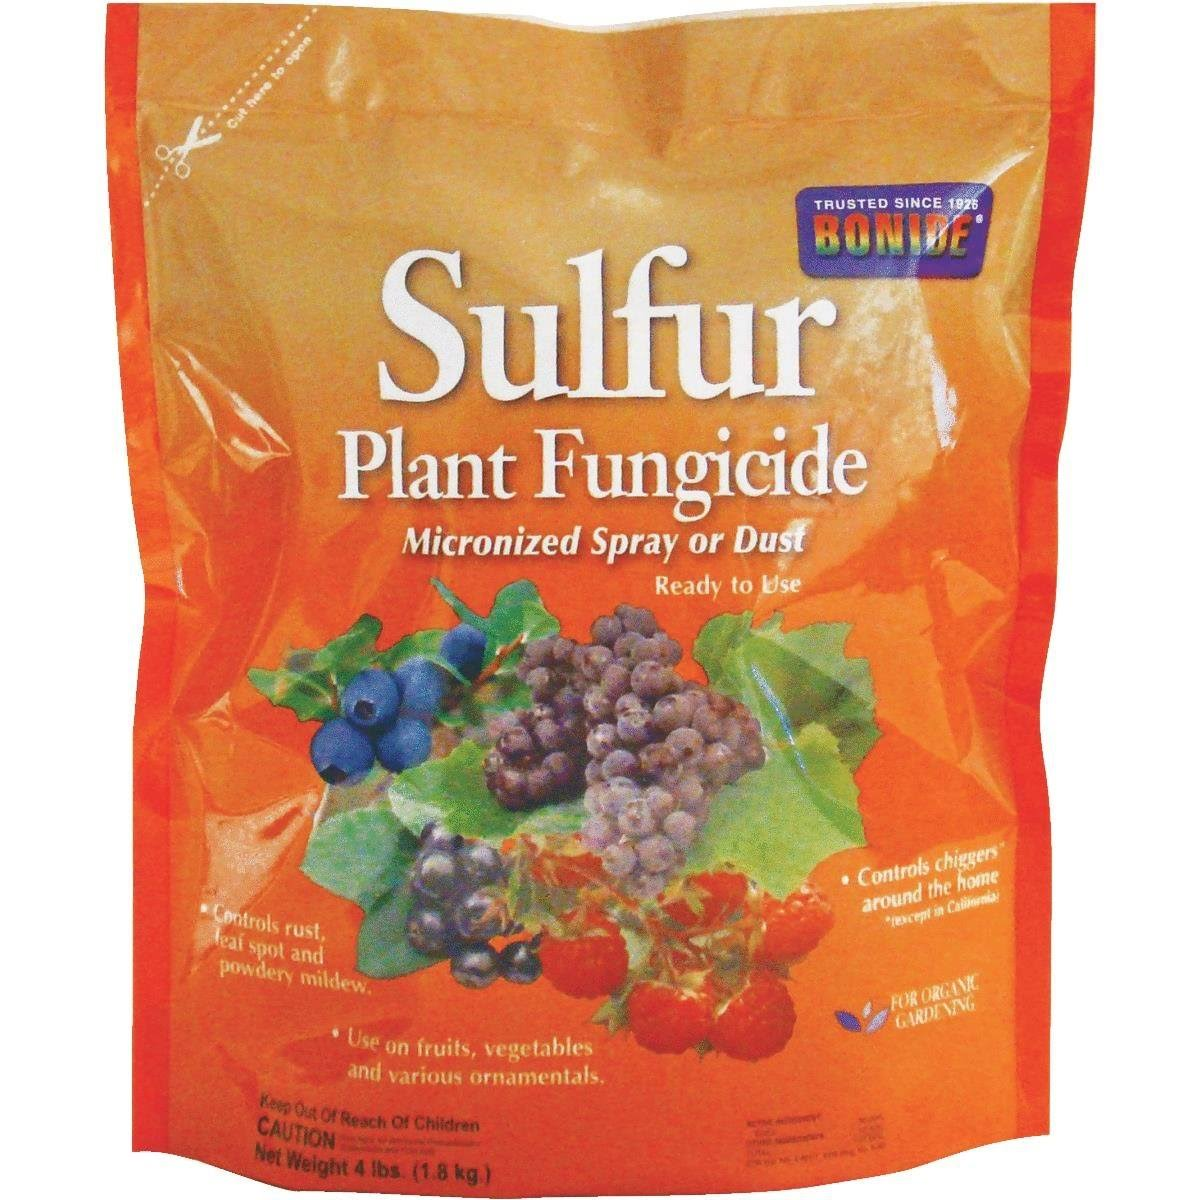 Bonide Products Sulfur Plant Fungicide